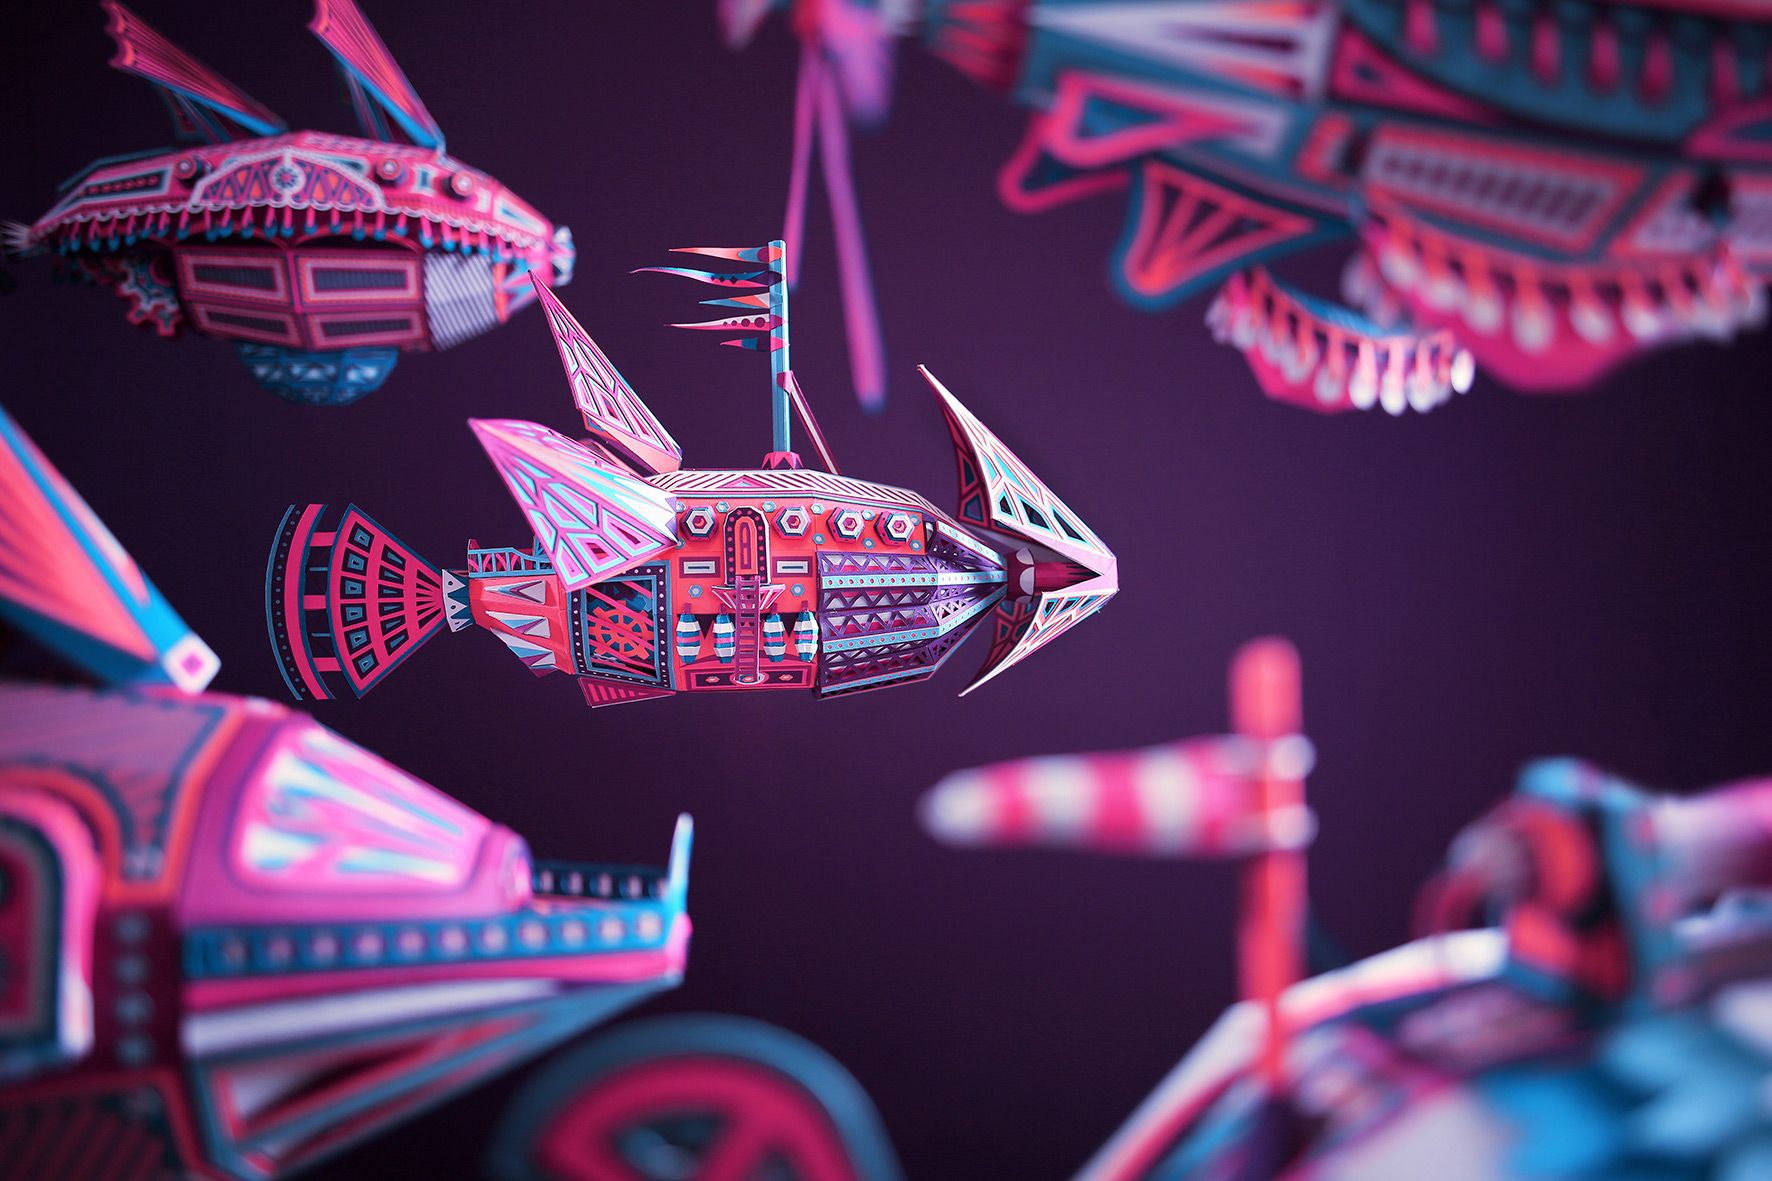 A Fleet of Magnificent Paper Aircraft by Zim & Zou Heads for an Unknown World in 'Exodus'